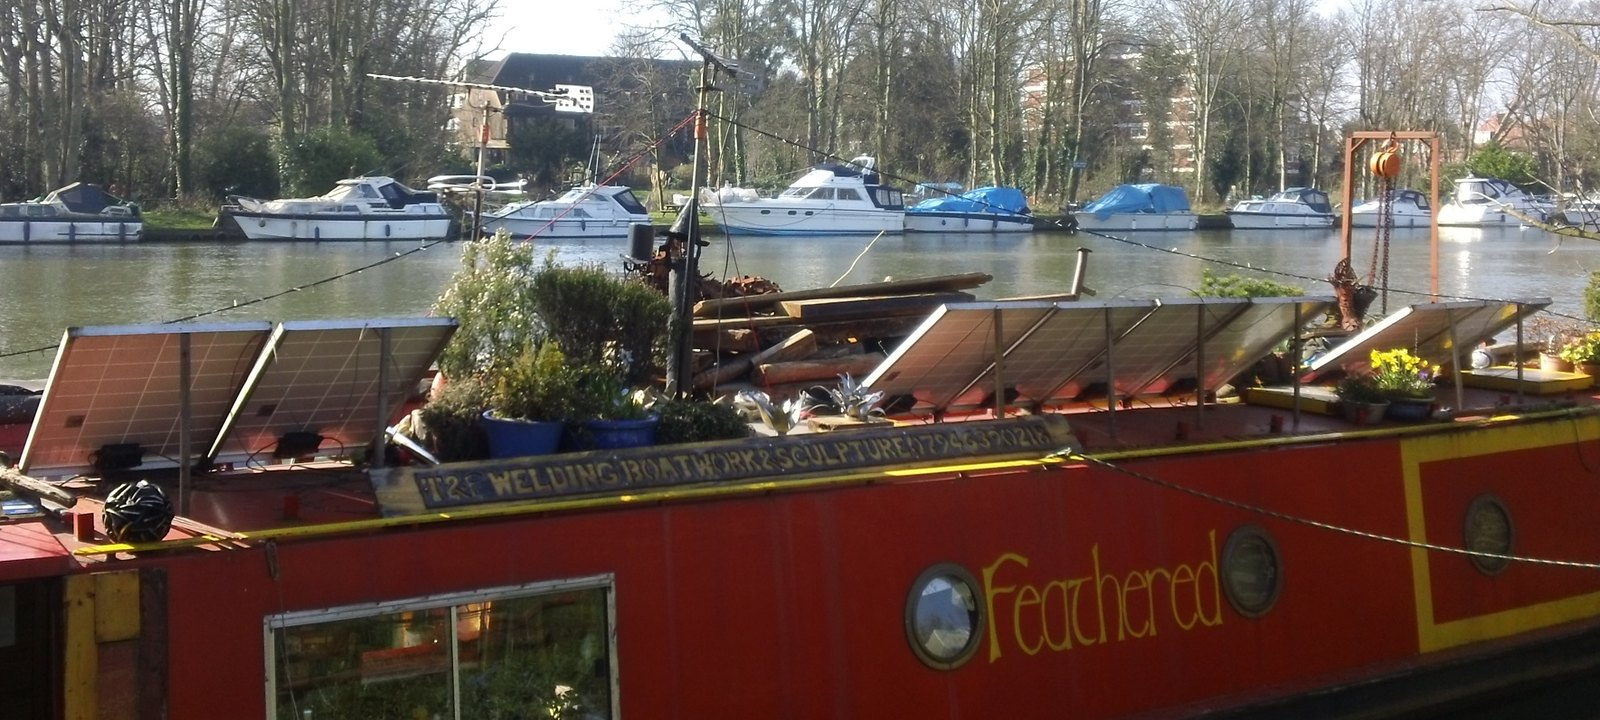 'Feathered' Thames canal boat with solar panels and rooftop garden near Kingston